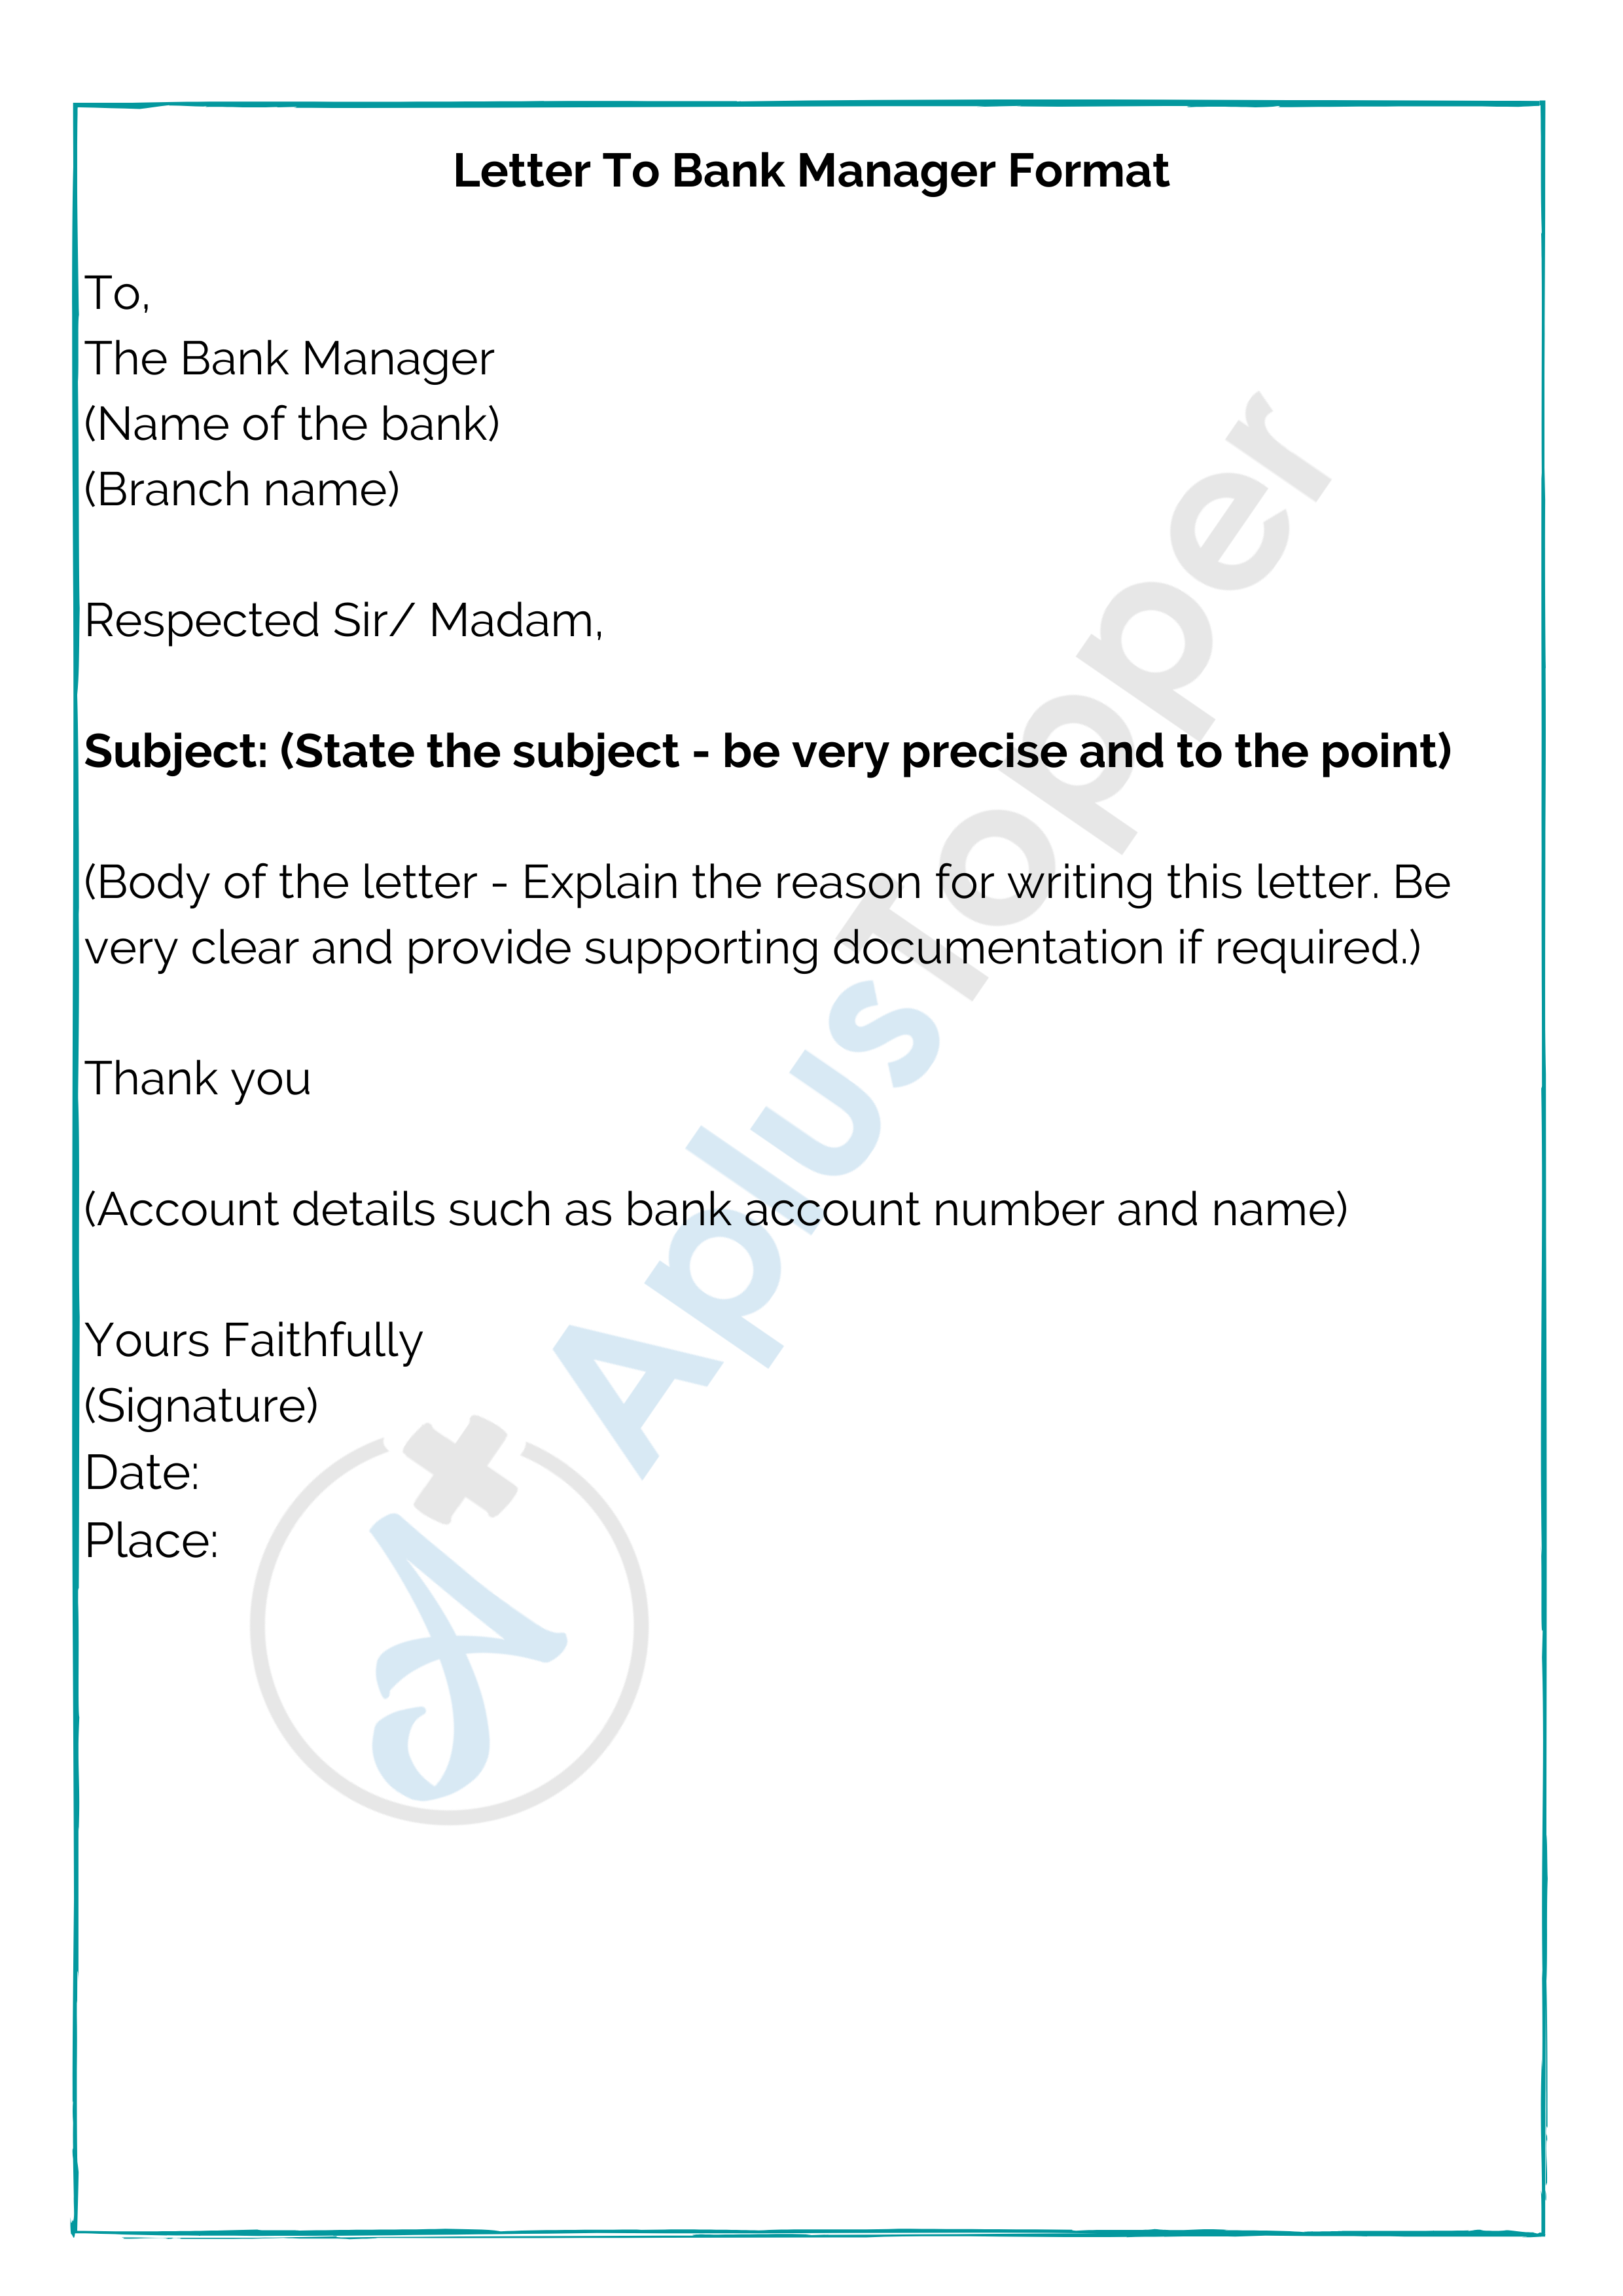 Letter To Bank Manager Format